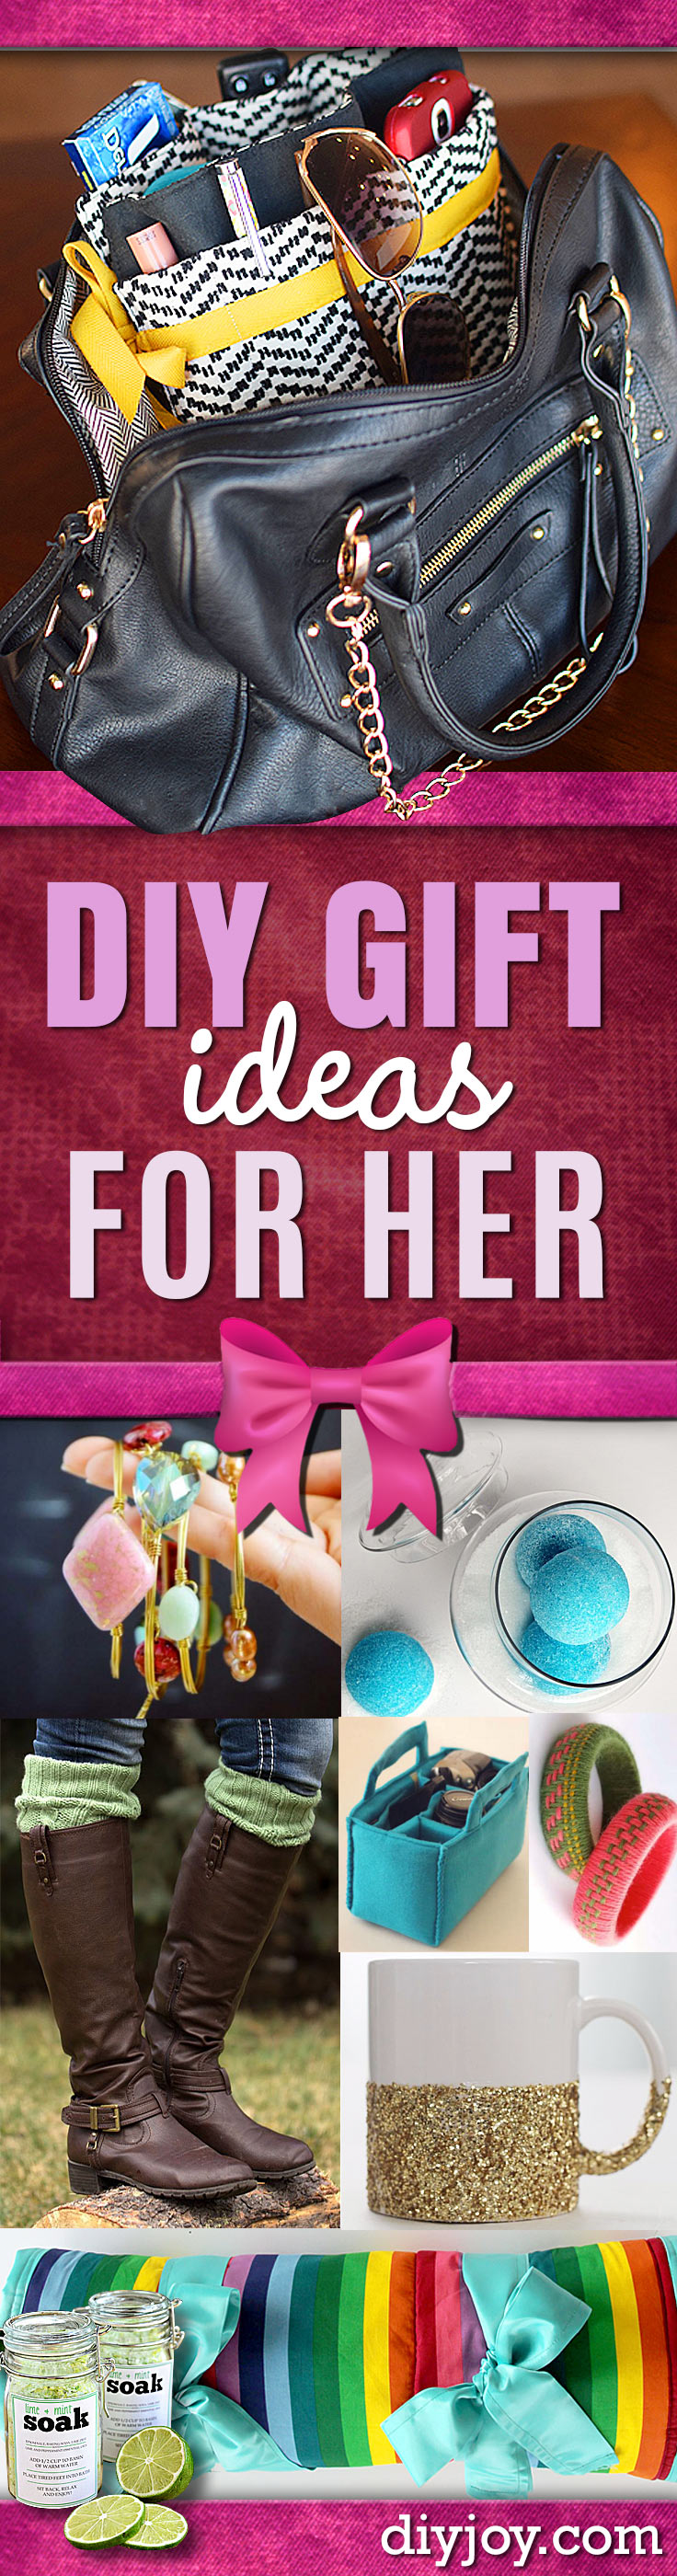 DIY Gift Ideas for Her Diy gifts for girlfriend